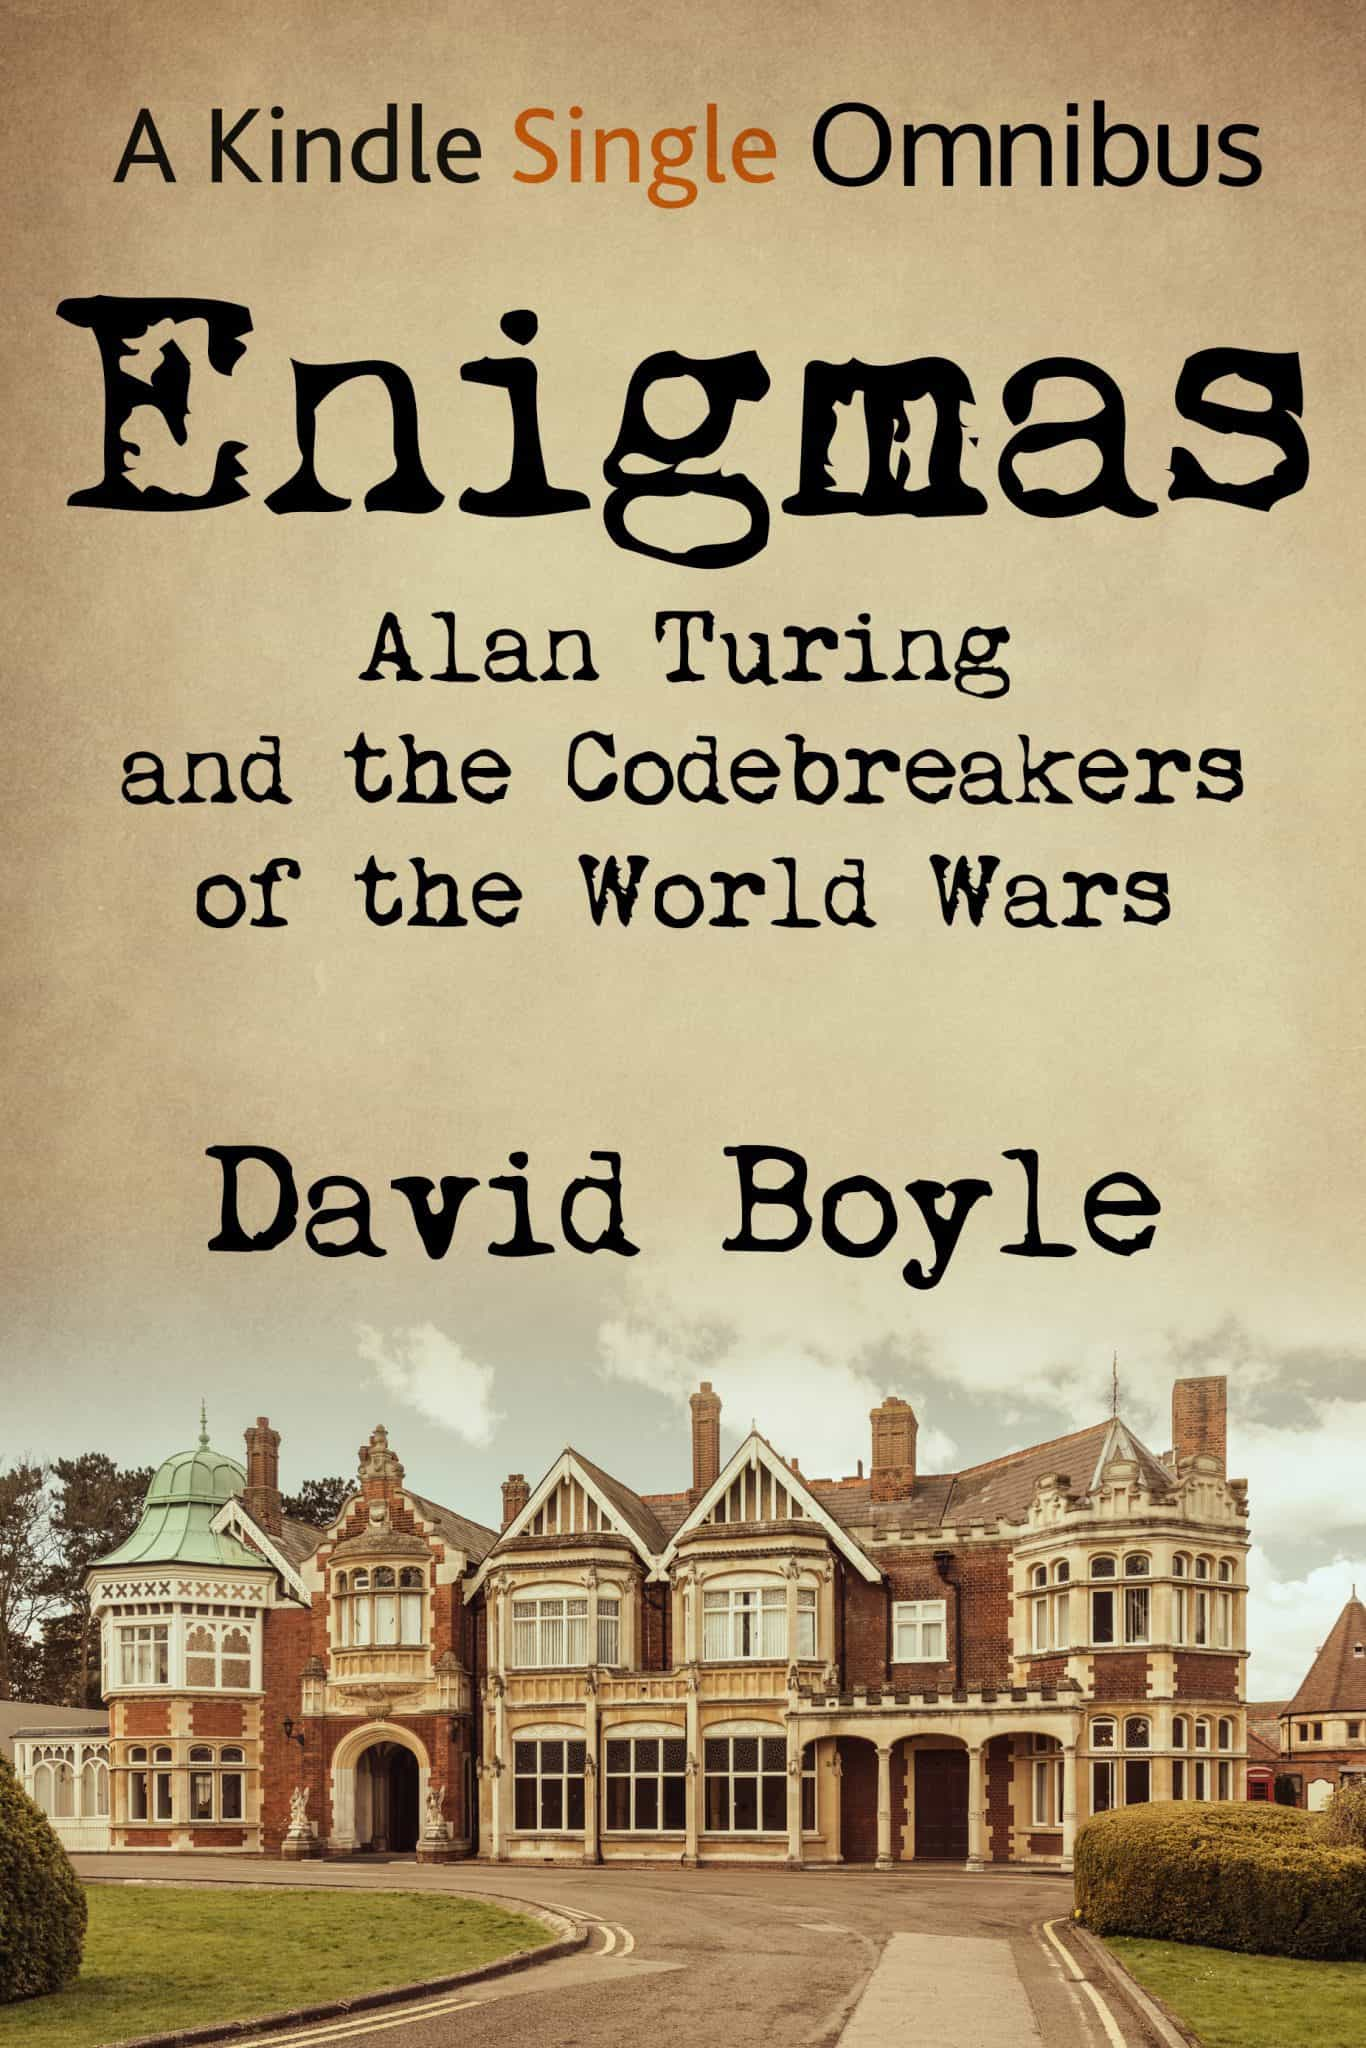 Enigmas: Alan Turing and the Codebreakers of the World Wars